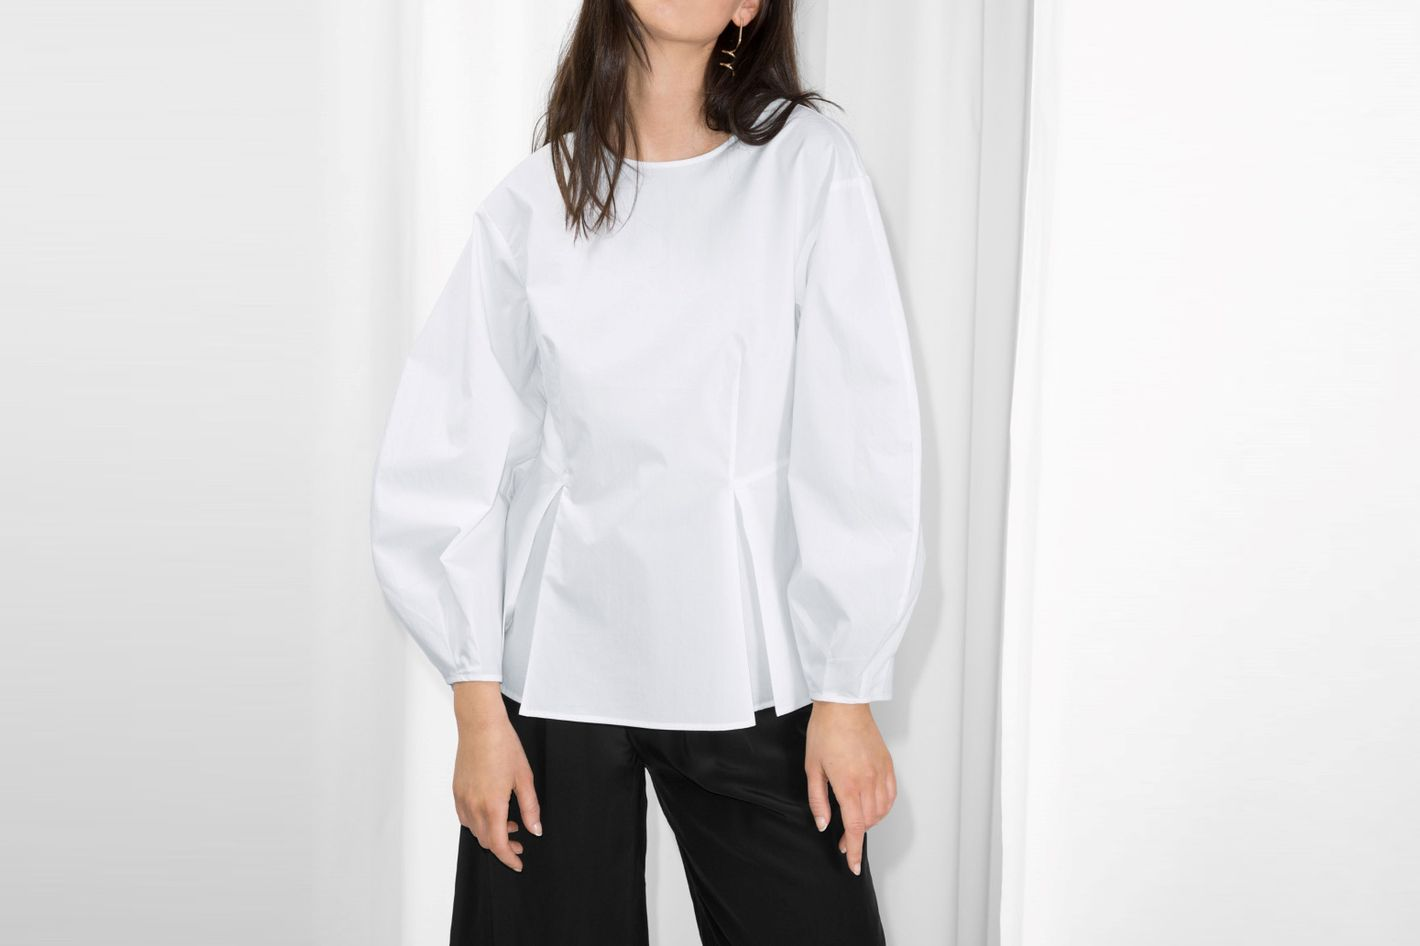 & Other Stories Puff Sleeve Peplum Blouse